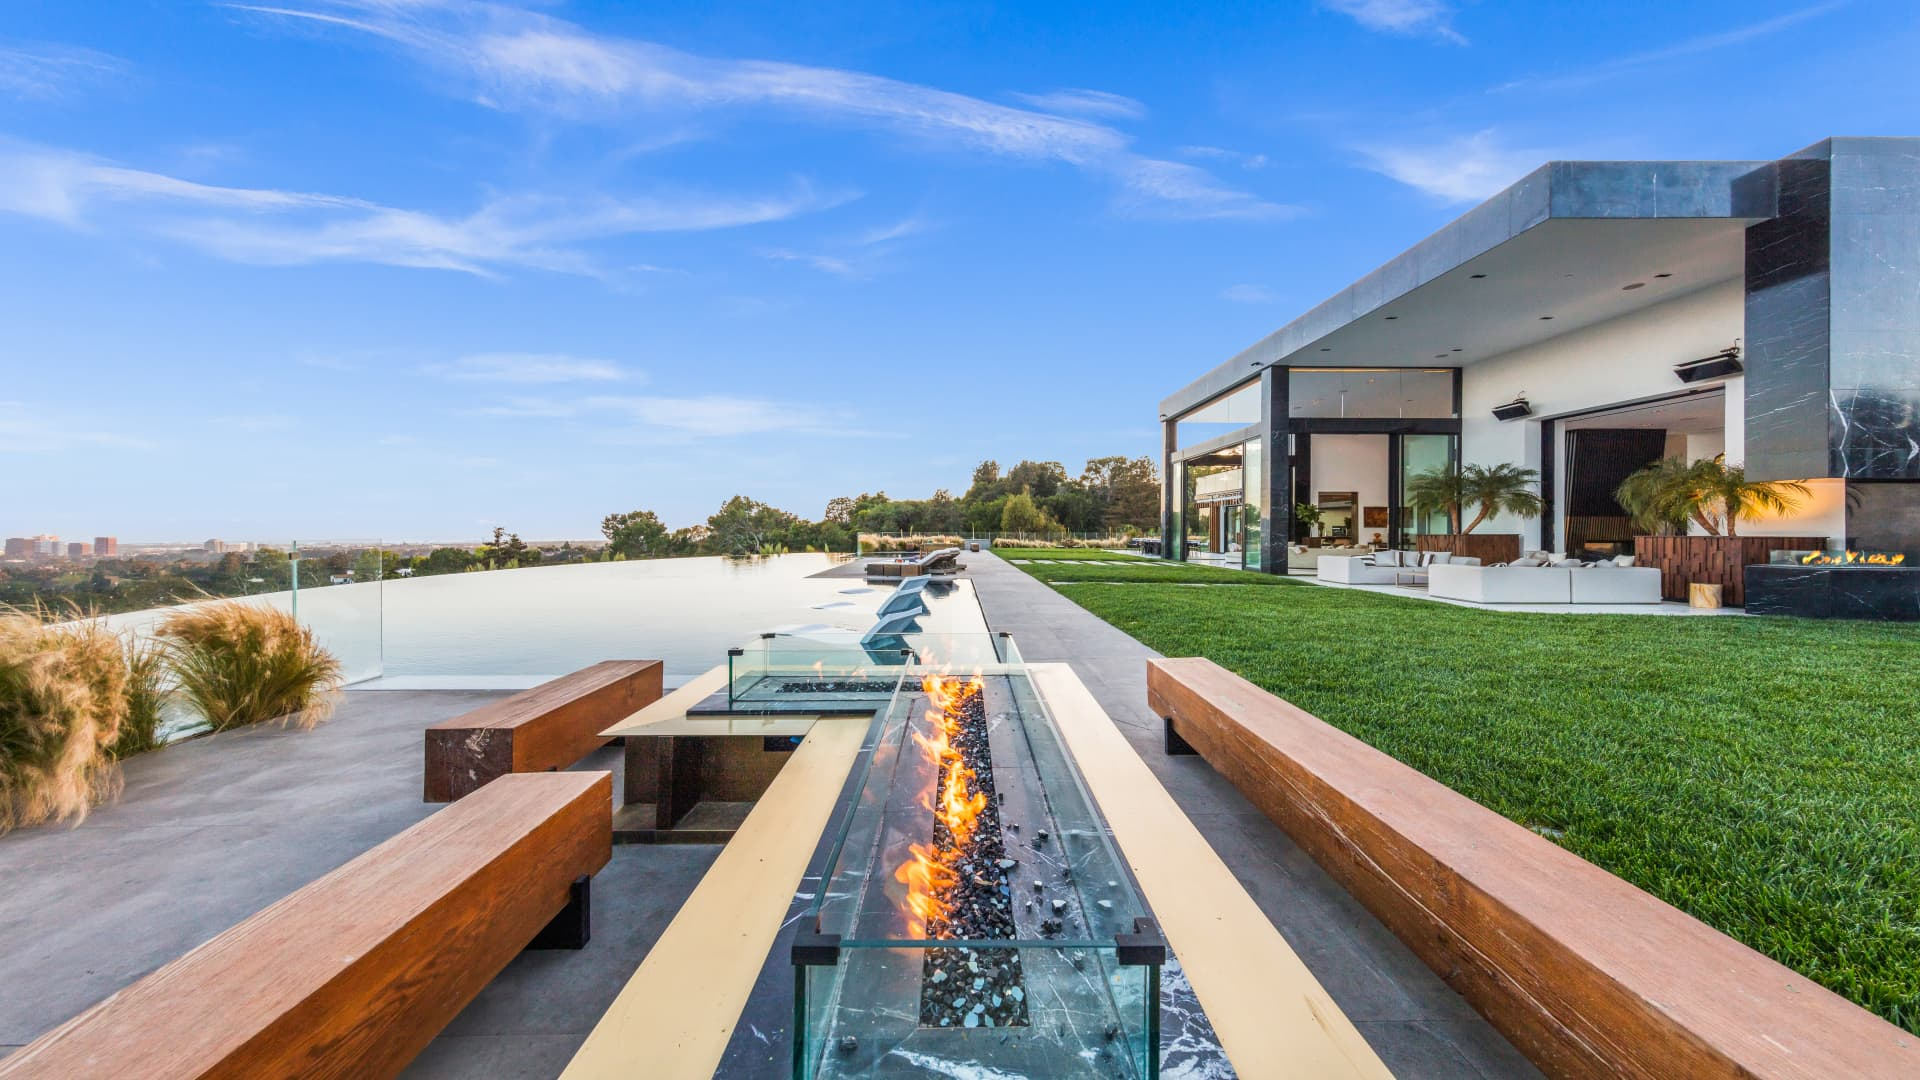 One of the outdoor seating areas is accented with fire features.